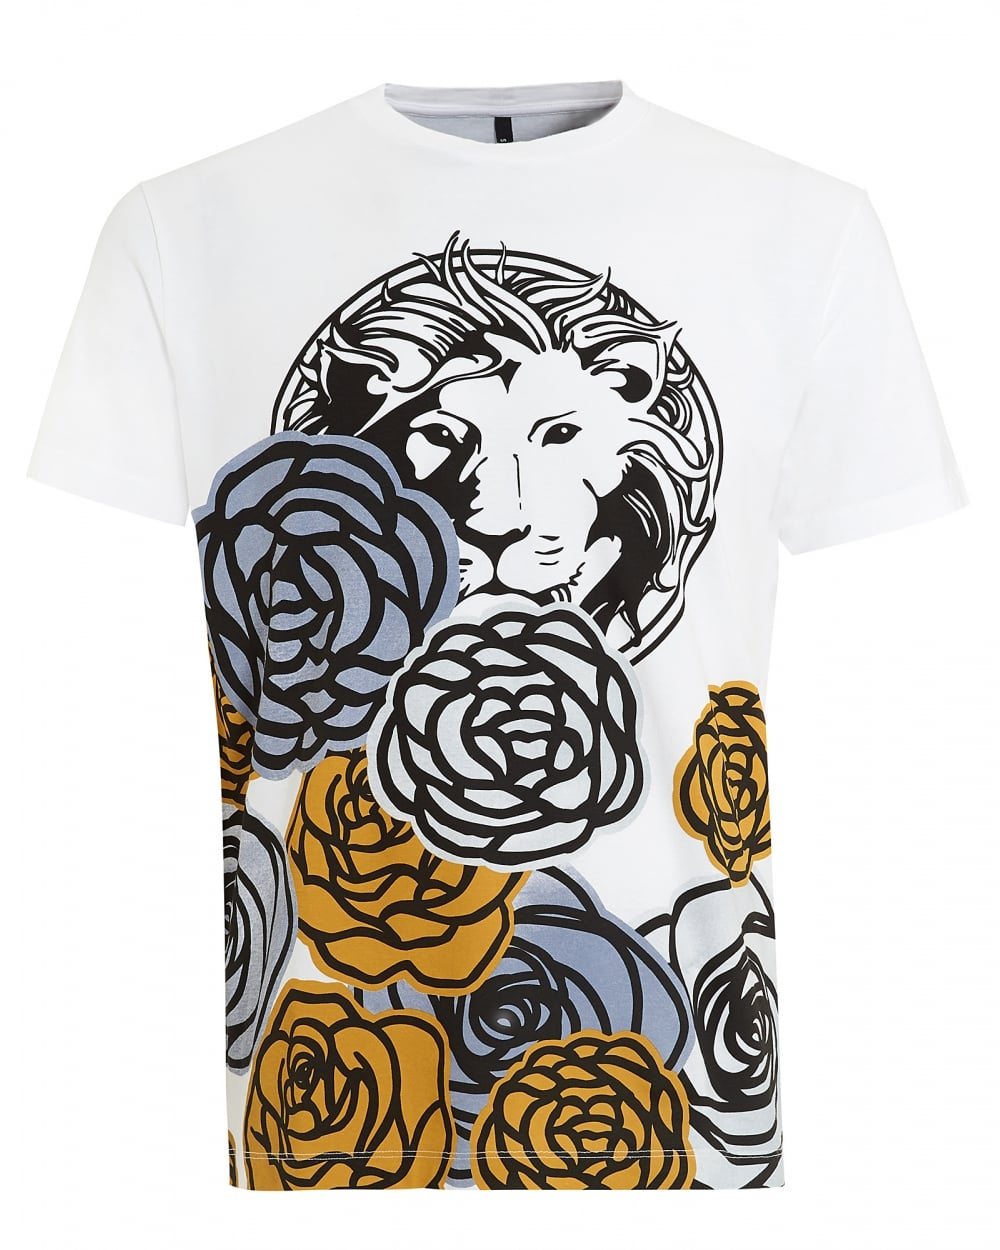 versace versus mens t shirt lion floral white tee. Black Bedroom Furniture Sets. Home Design Ideas